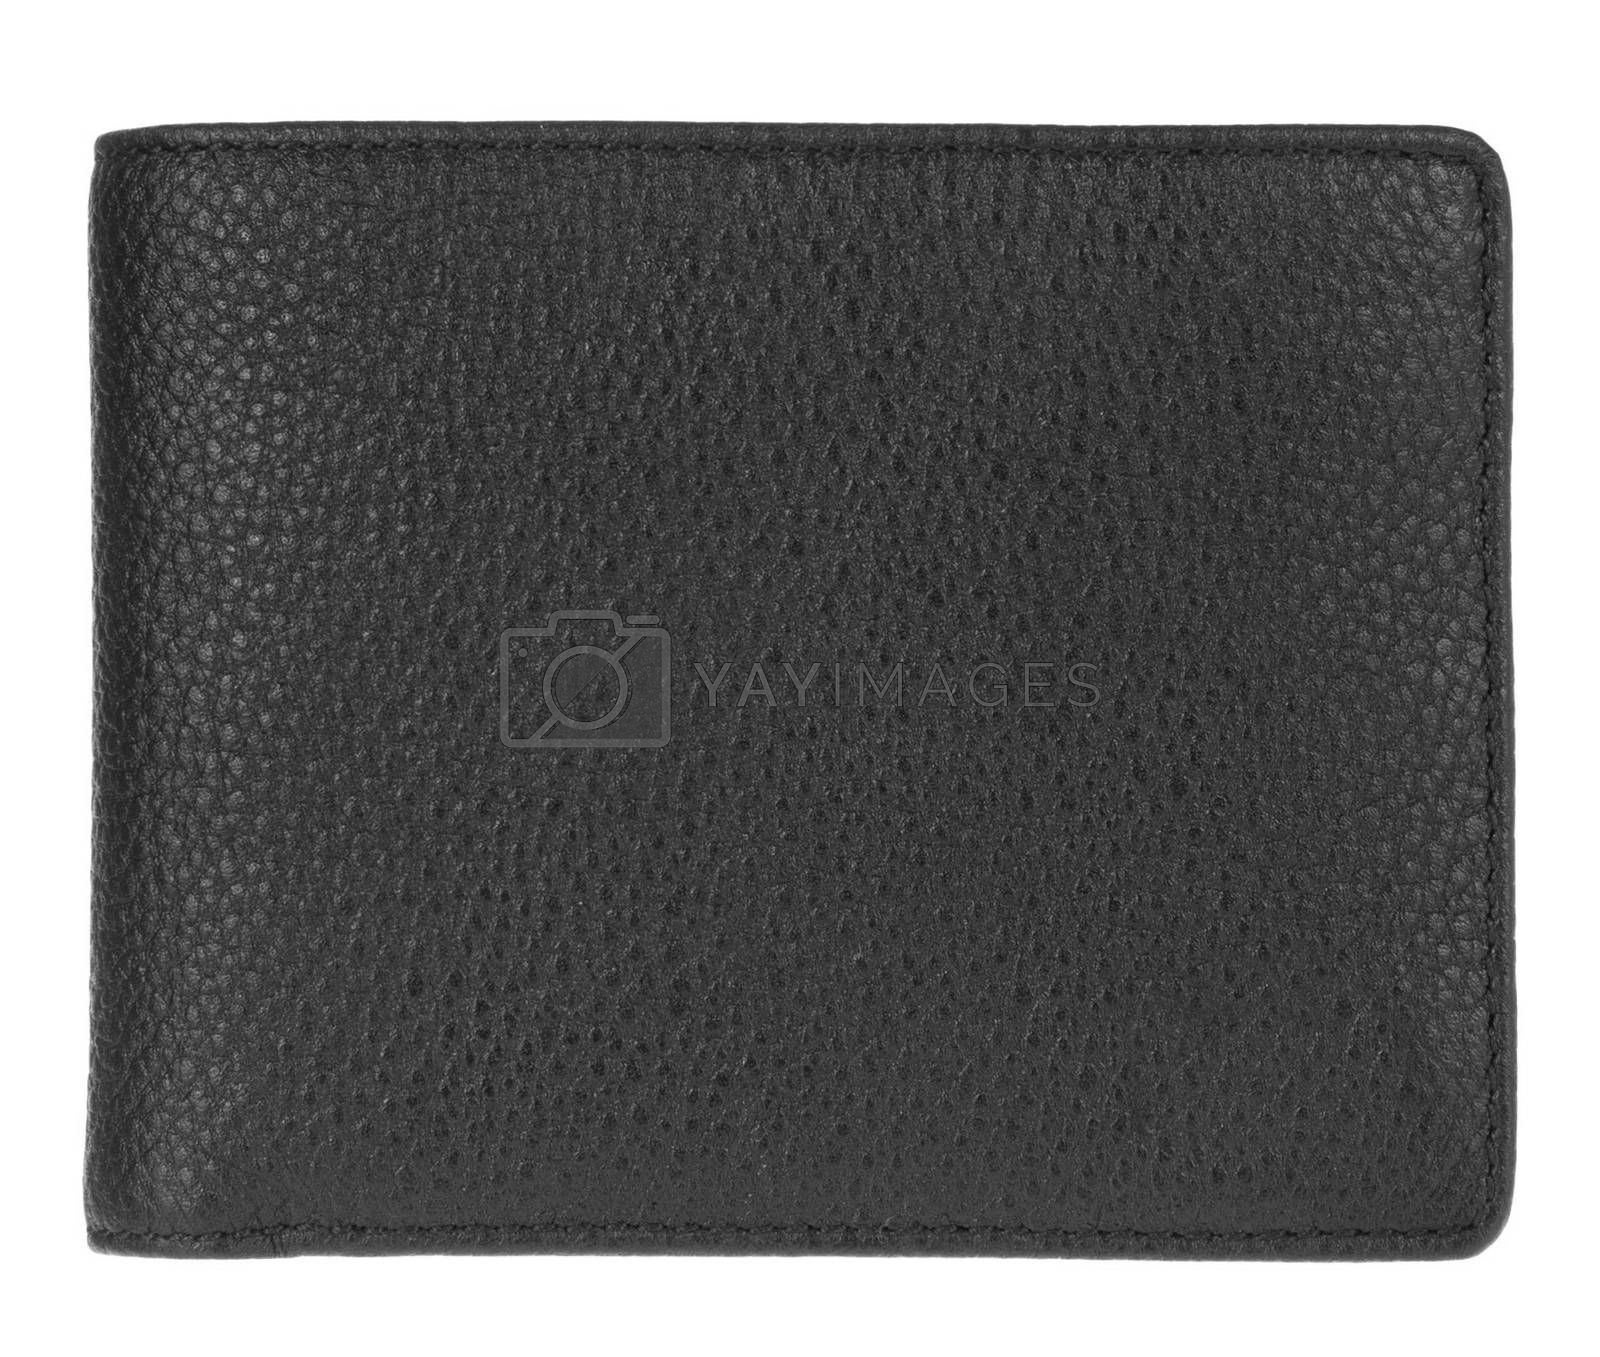 black wallet isolated on white background